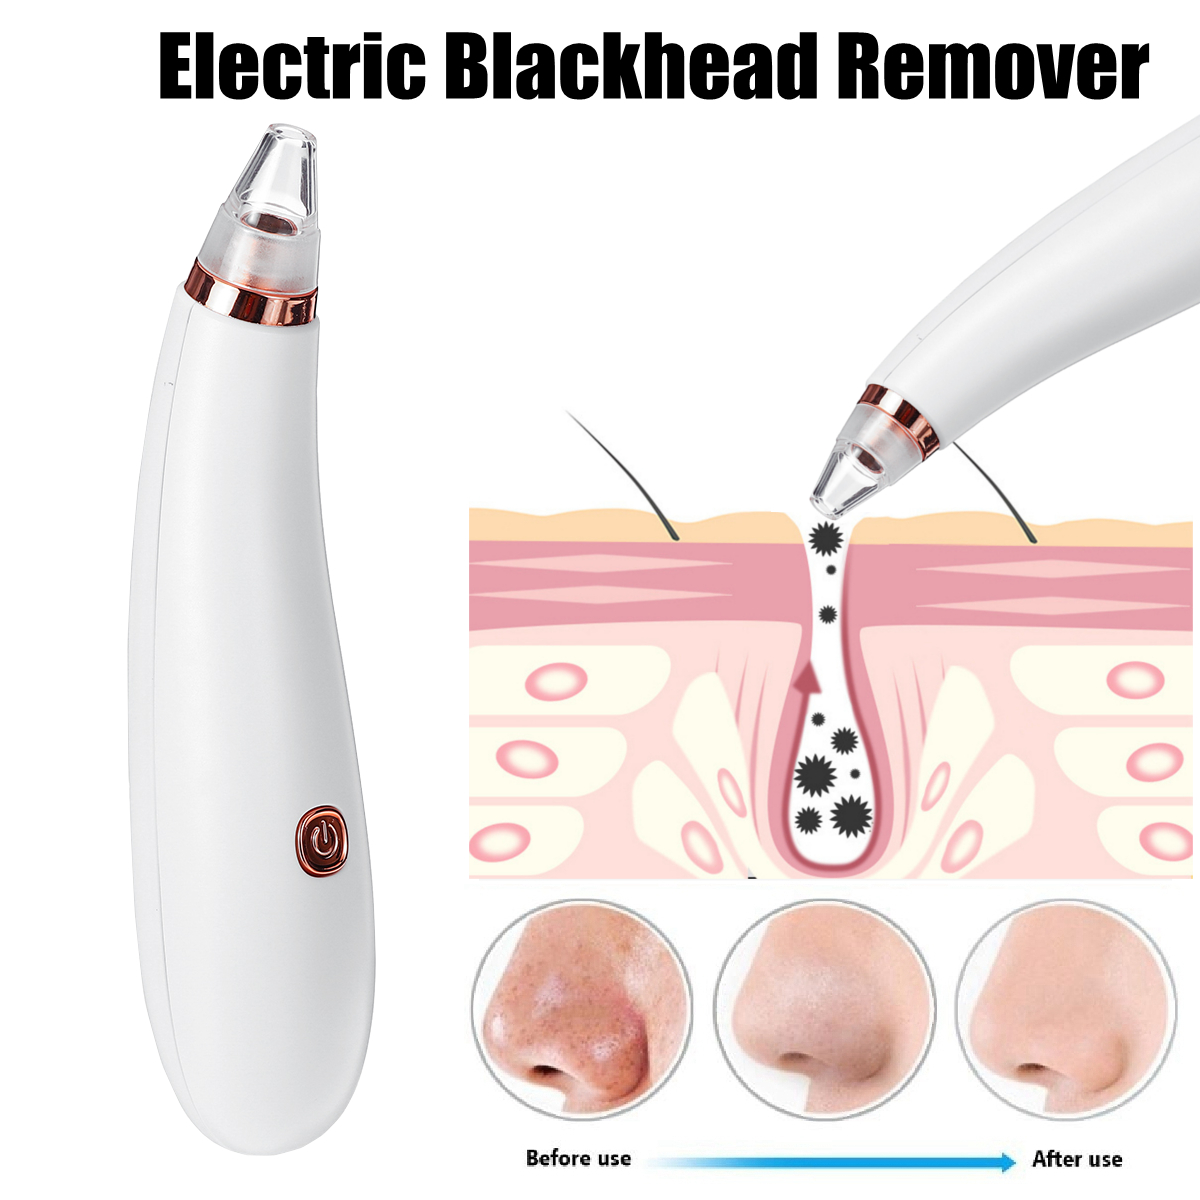 Blackhead Remover Vacuum Facial Pore Cleanser Electric Acne Comedone Extractor Kit Battery Electric Blackhead Suction Tool